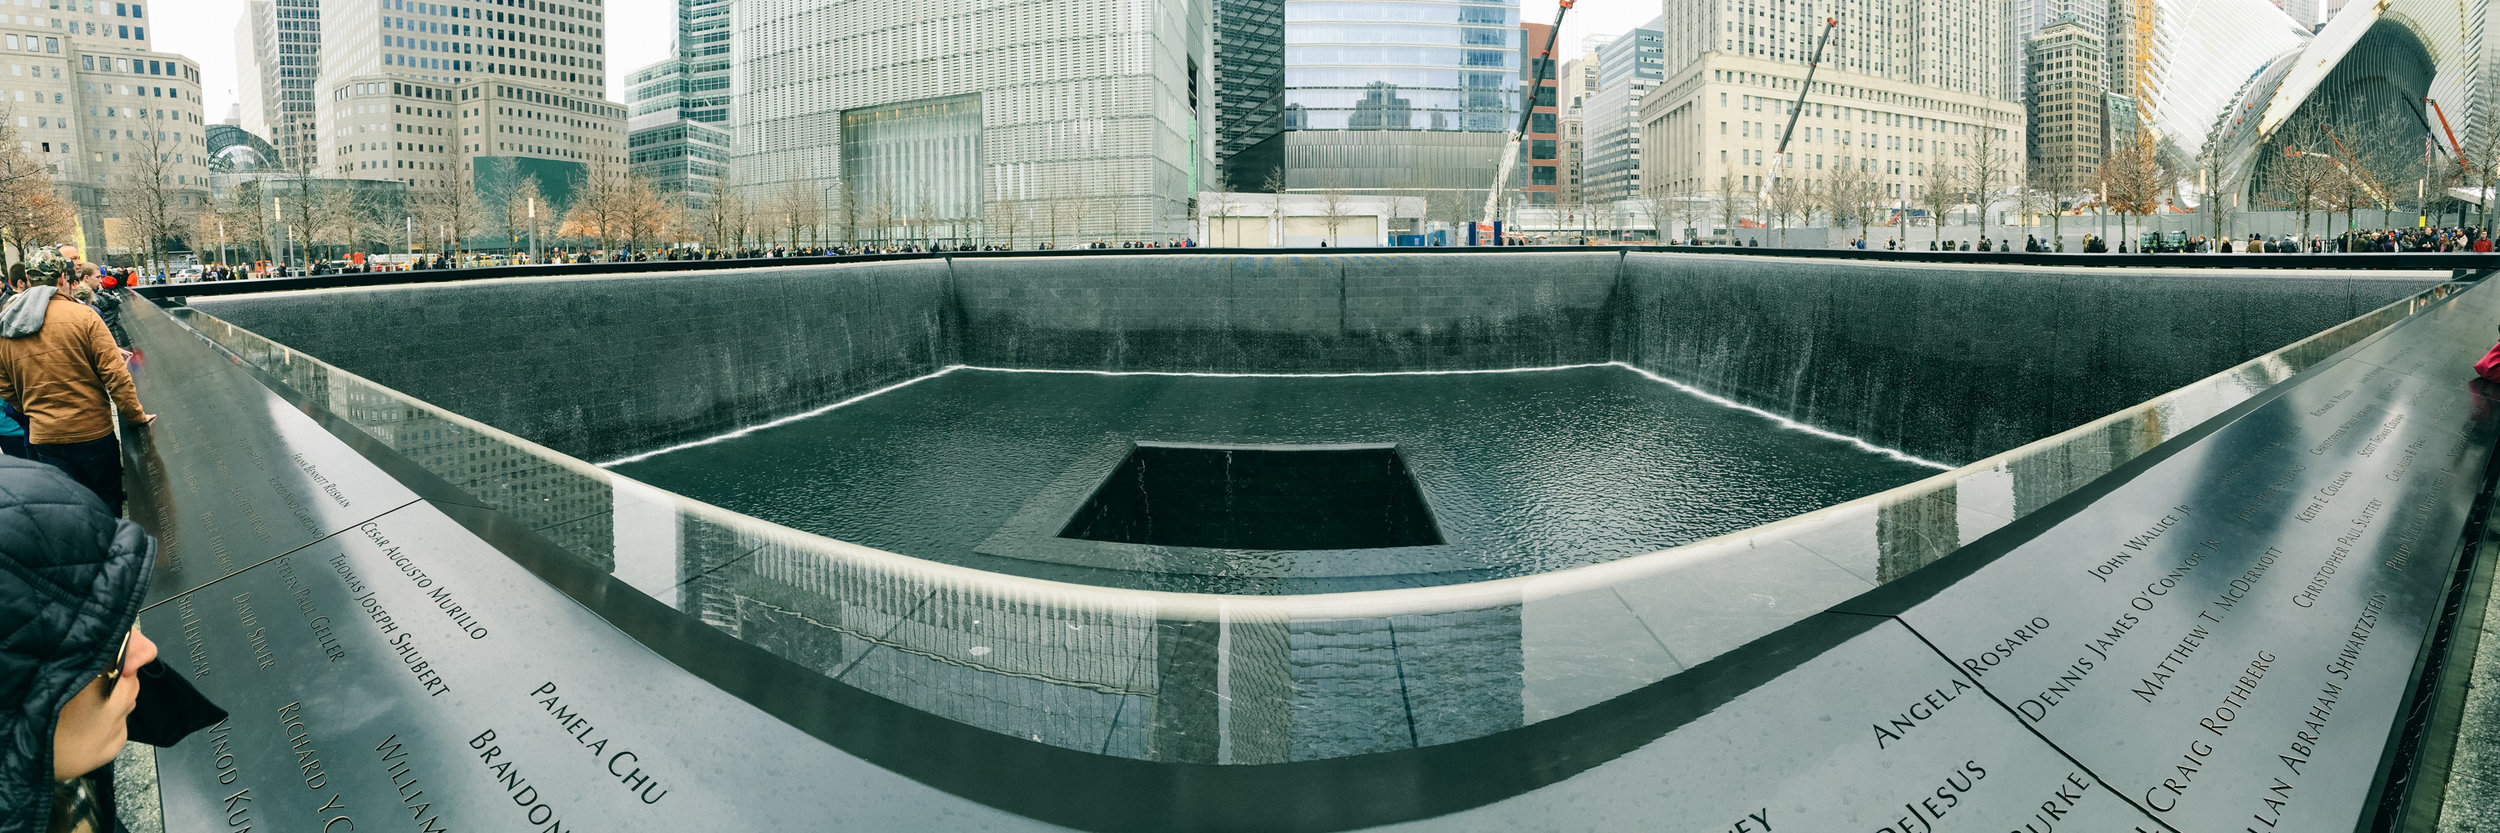 NEW YORK CITY: WORLD TRADE CENTER MEMORIAL